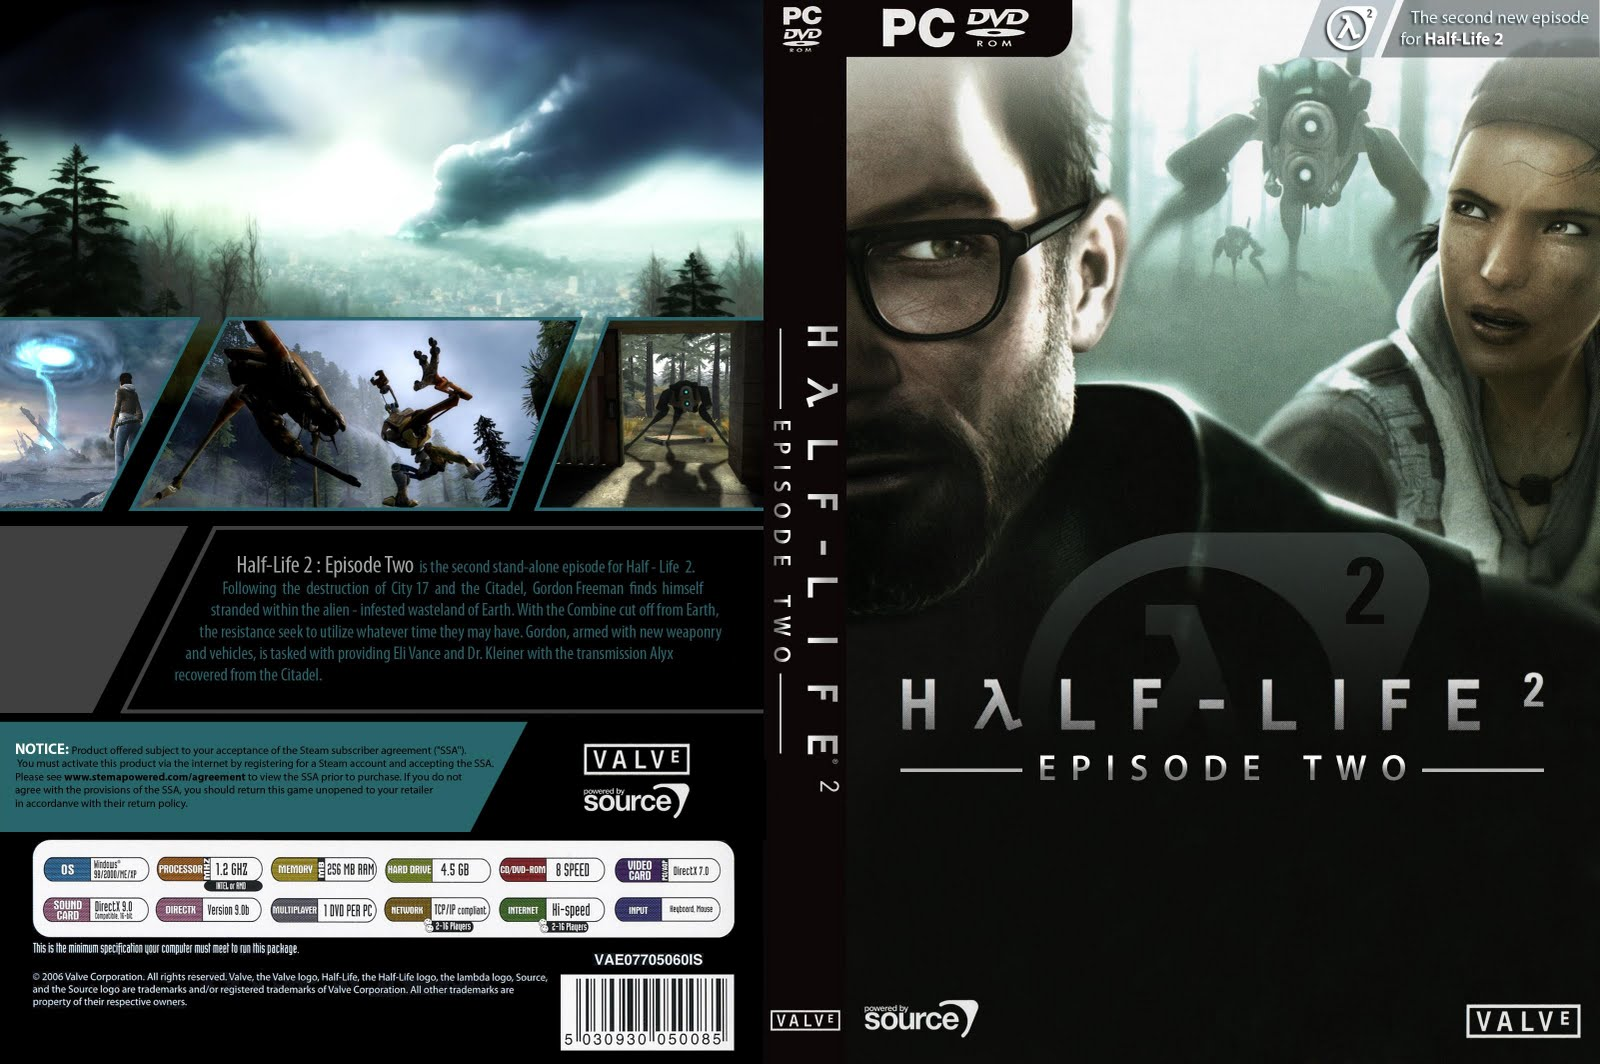 Half life 2 continuation mod, half life 2 episode two, total conversion, addon, development, indie, extension